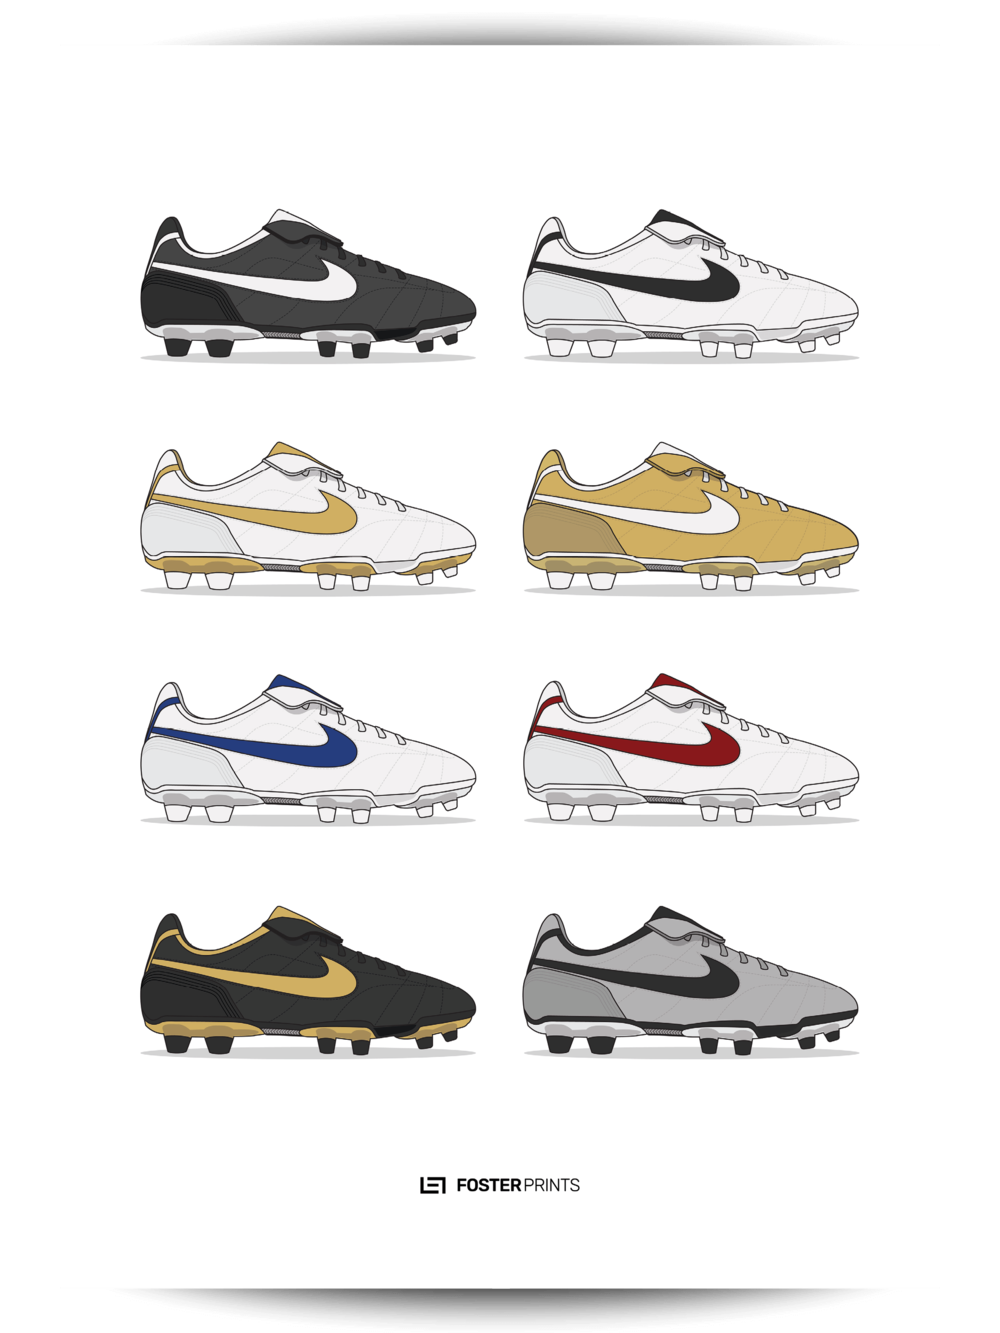 198db7893db czech nike tiempo legend i collection football poster 7f23f 7d6d9